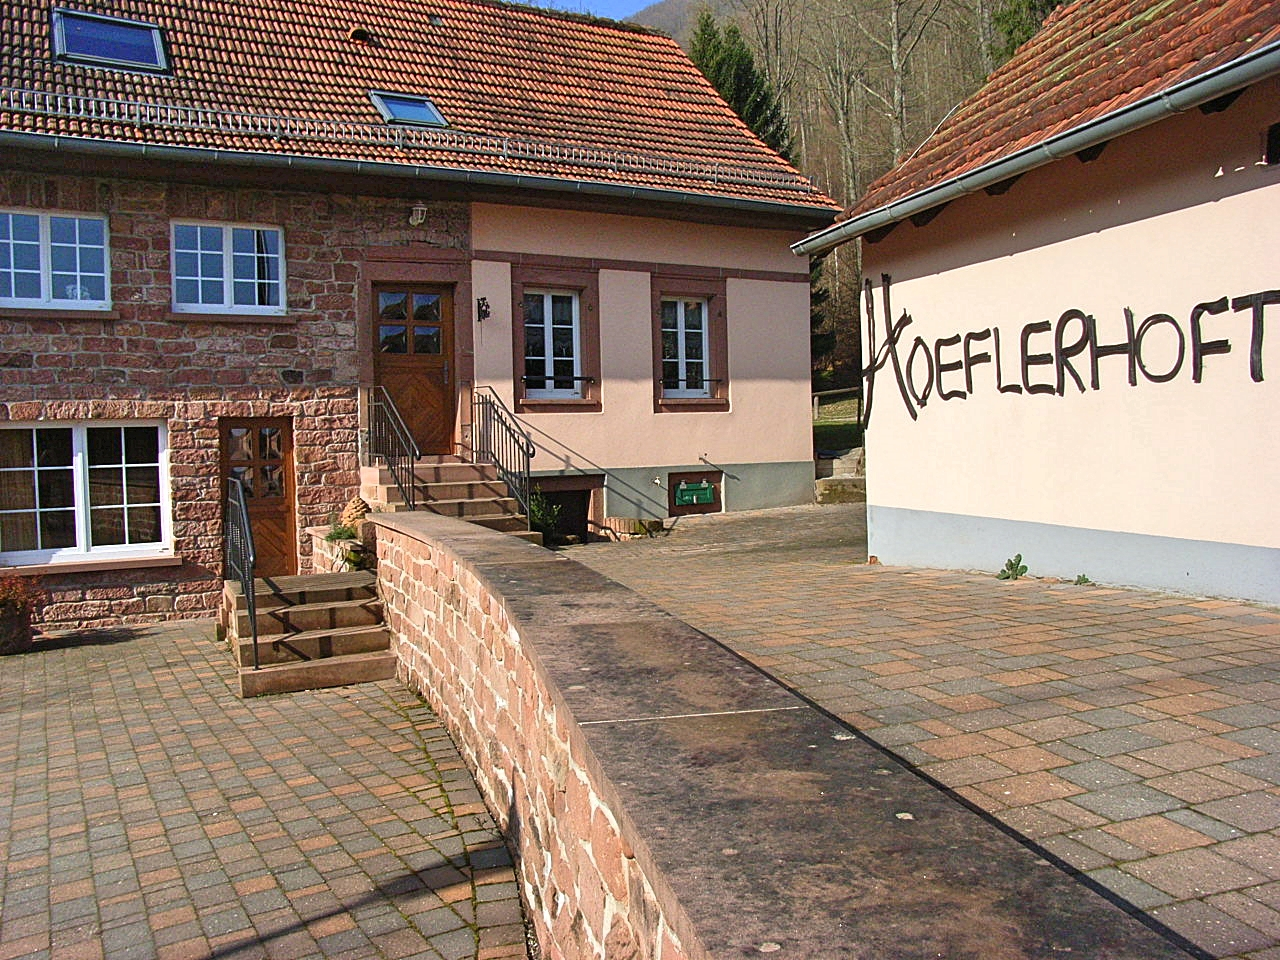 Der Hoeflerhoft in Wengelsbach